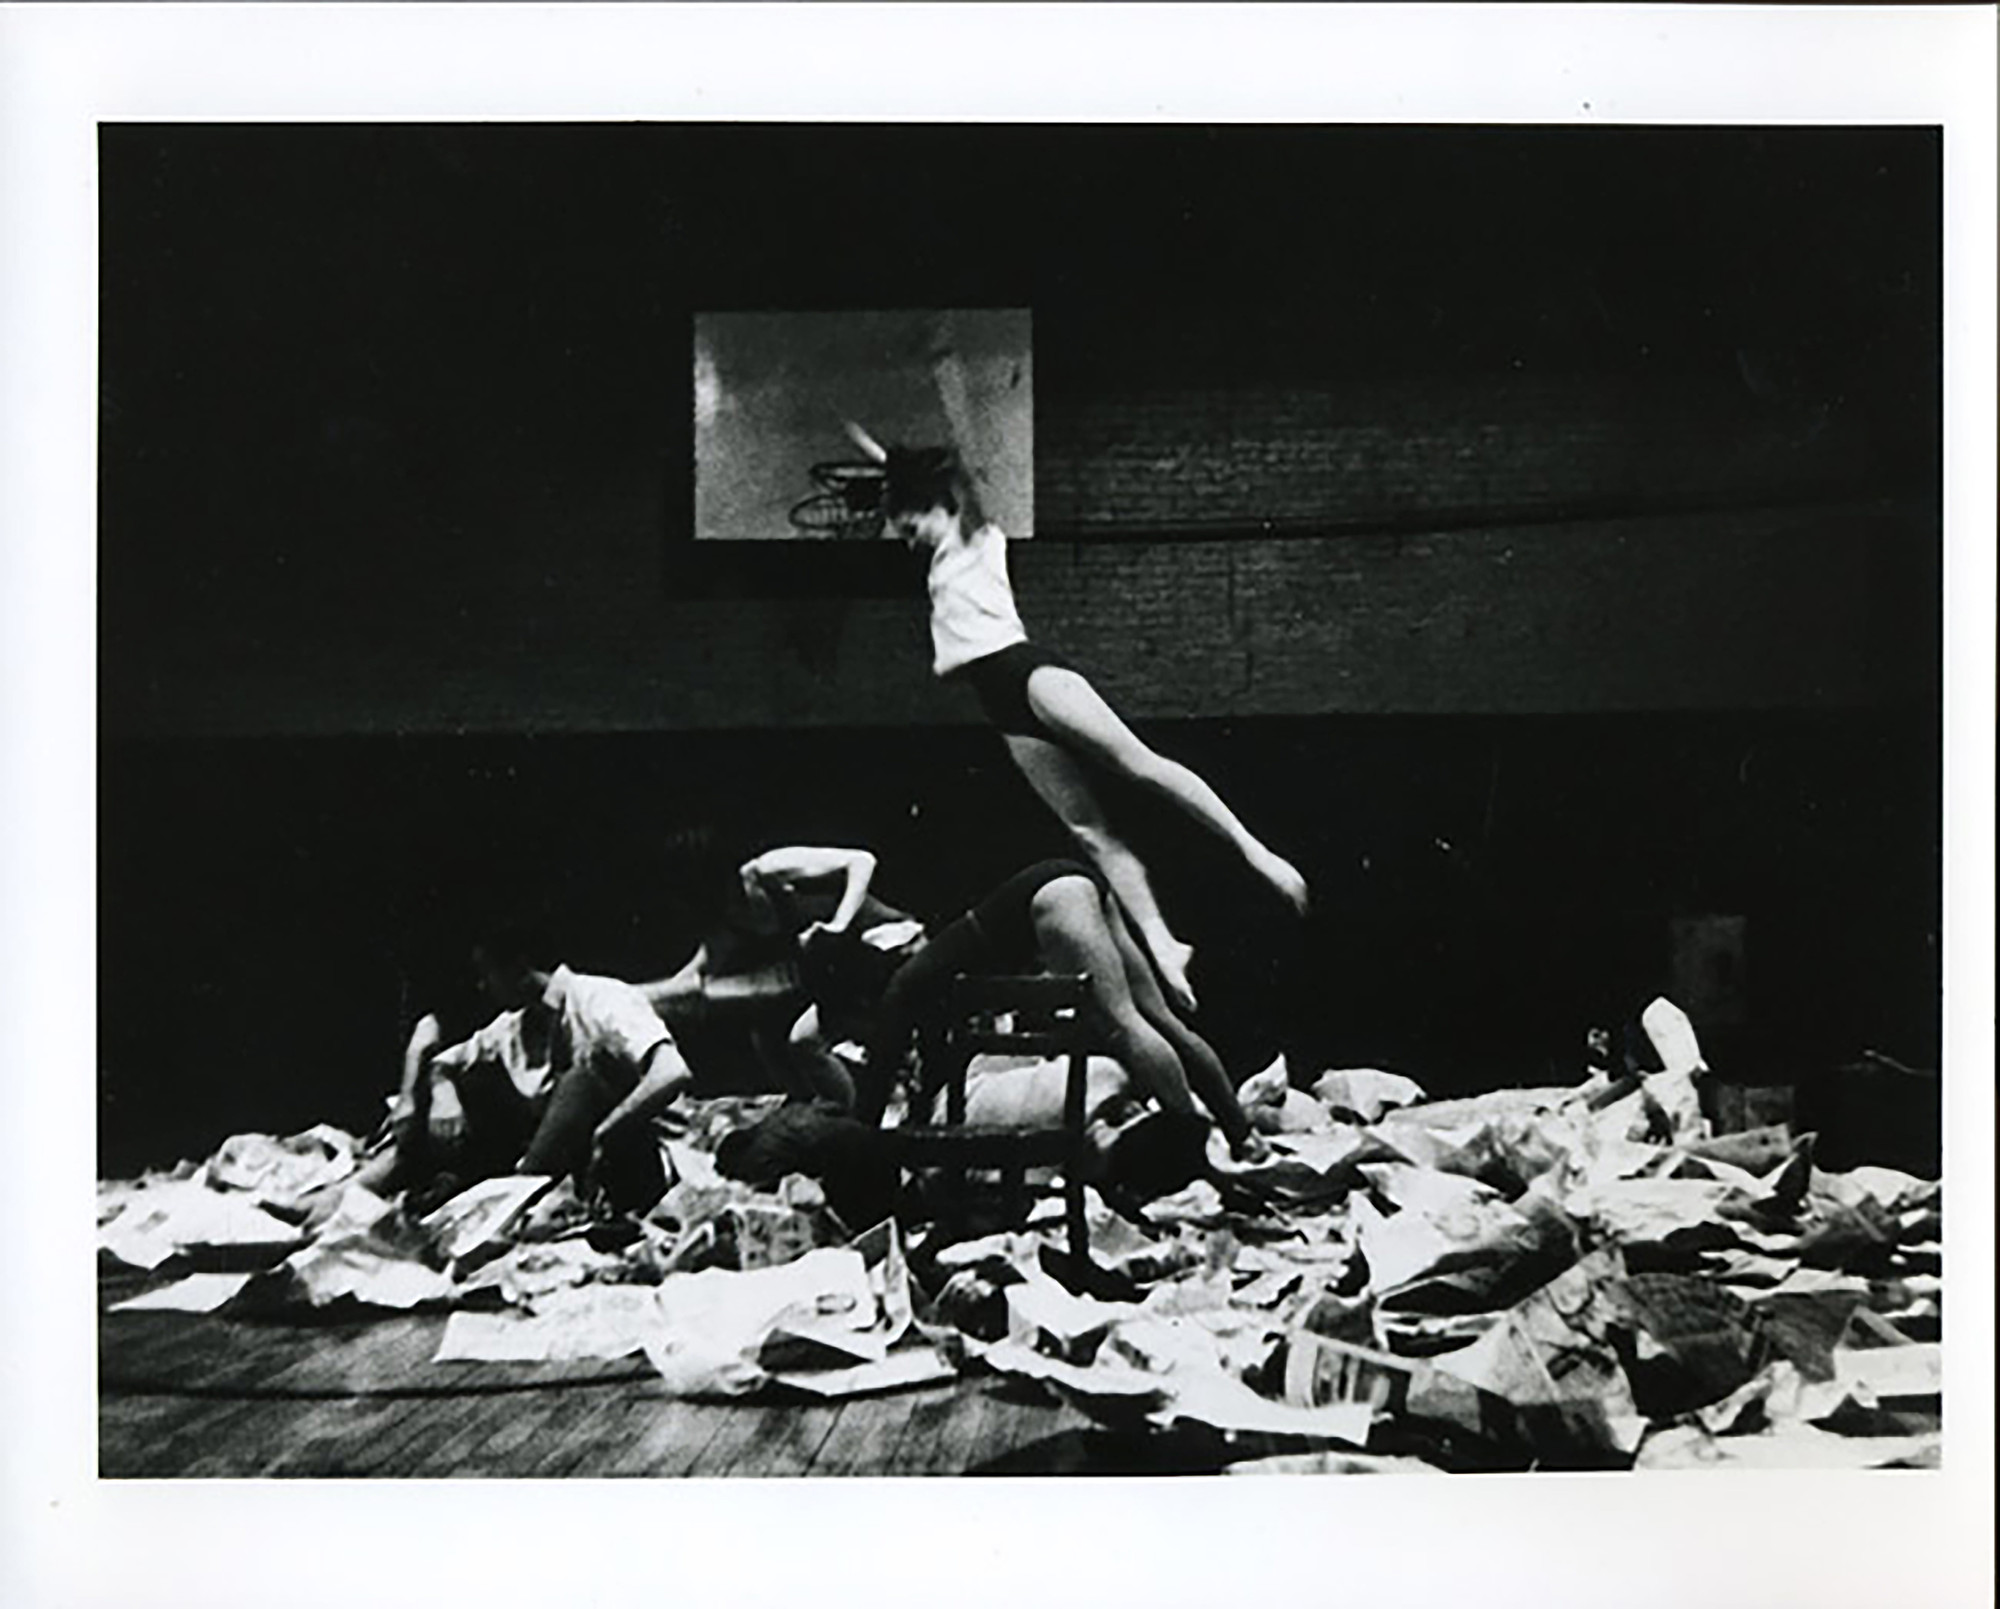 Al Giese's photograph of Ruth Emerson in Carolee Schneemann's _Newspaper Event_. Performed at _Concert of Dance #3_, Judson Memorial Church, January 29, 1963. © Estate of Al Giese/Licensed by VAGA, New York, NY. Courtesy of Carolee Schneemann, Galerie Lelong & Co., and P•P•O•W, New York